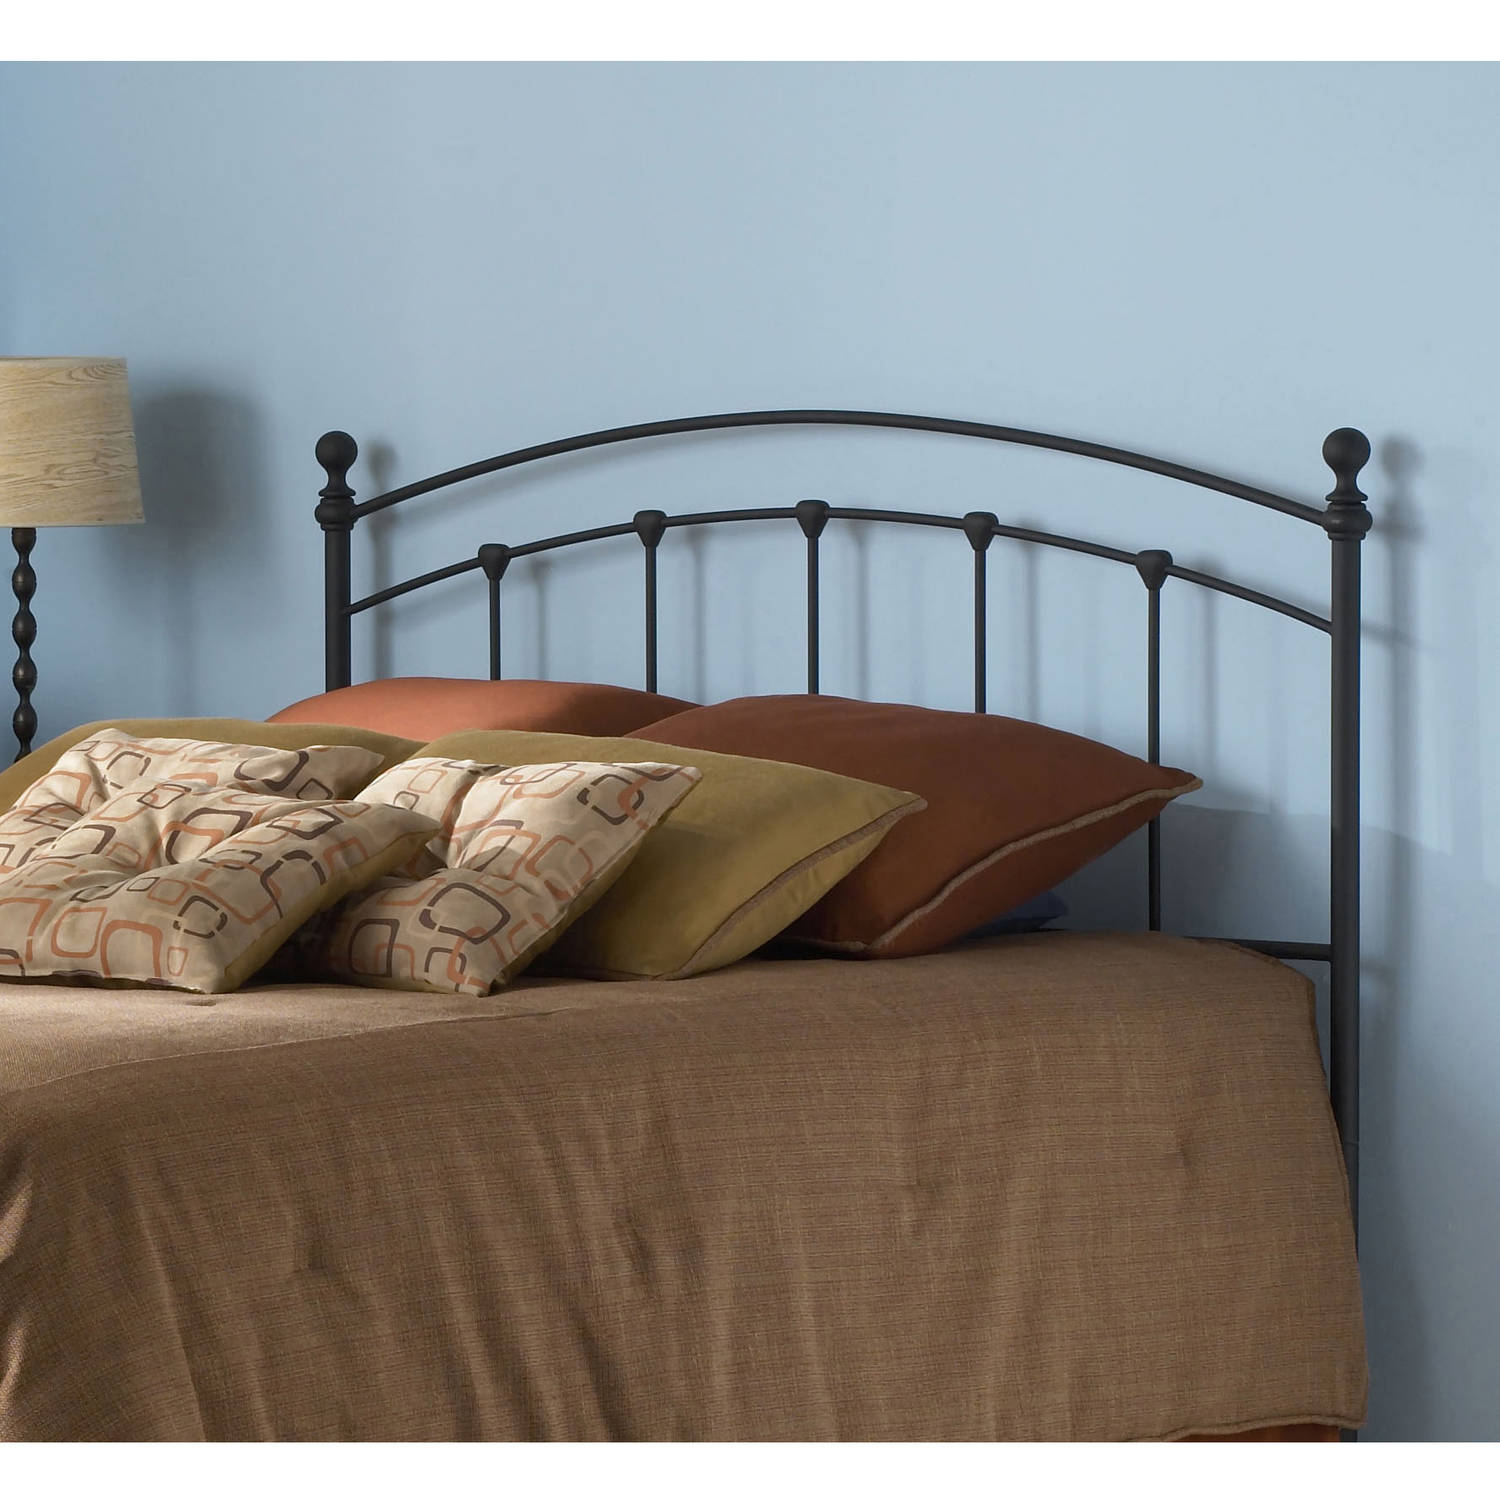 Fashion Bed Group by Leggett & Platt Sanford Matte Black Headboard, Multiple Sizes